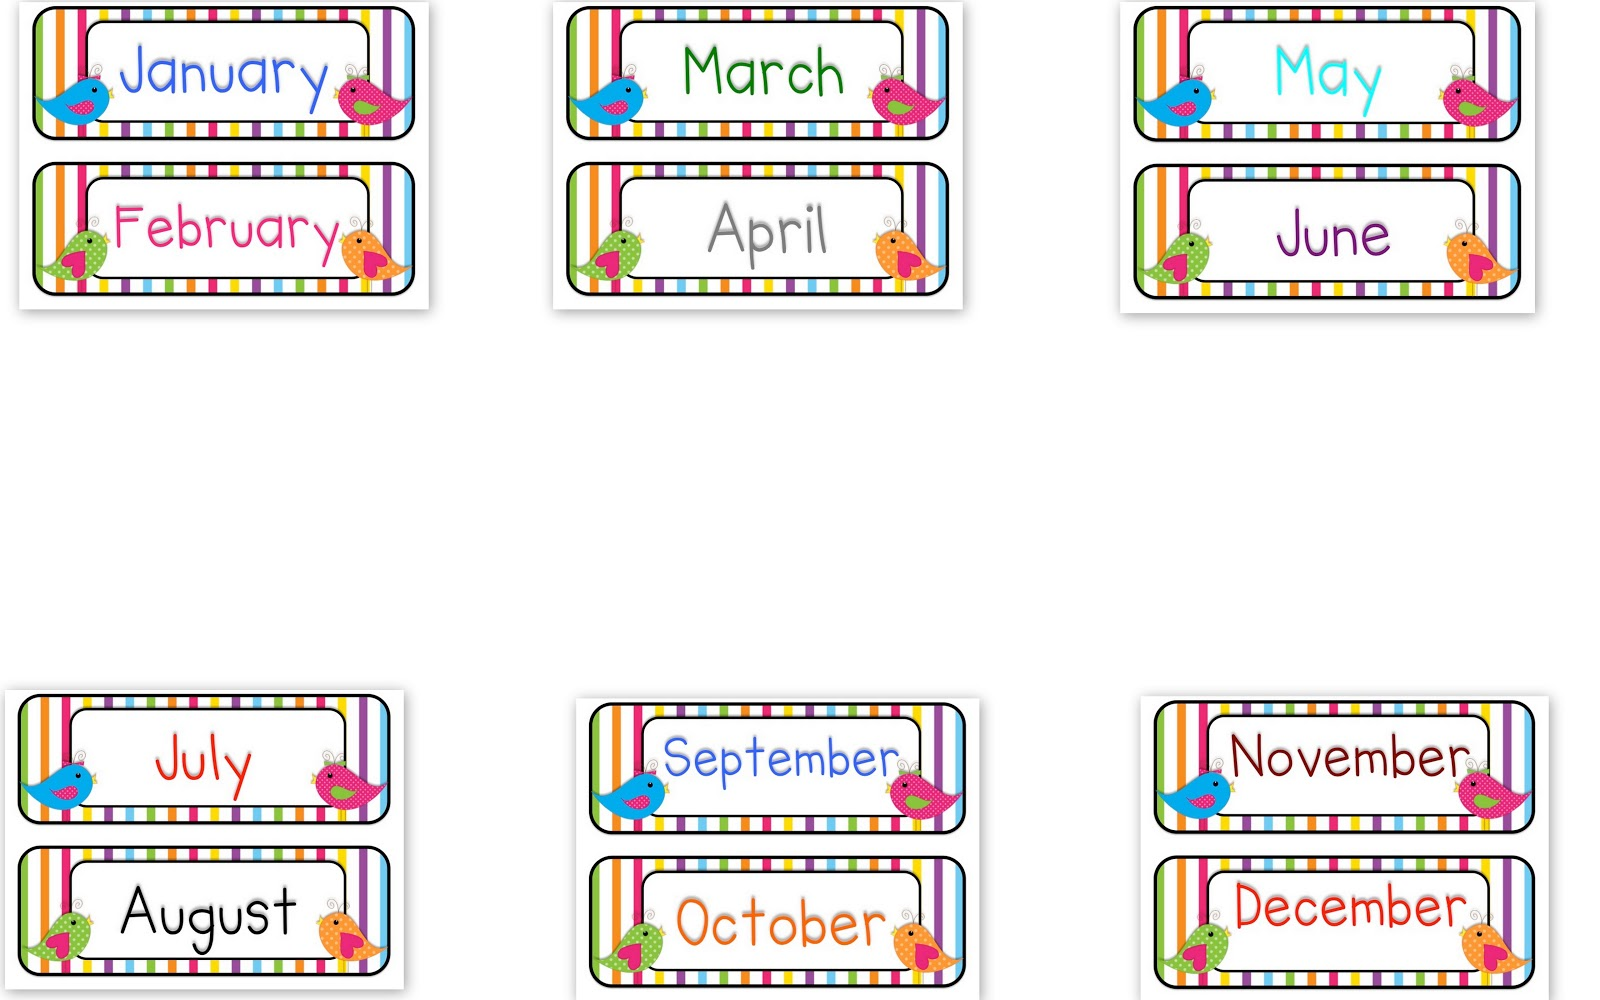 Months of Year Clip Art-Months of Year Clip Art-8